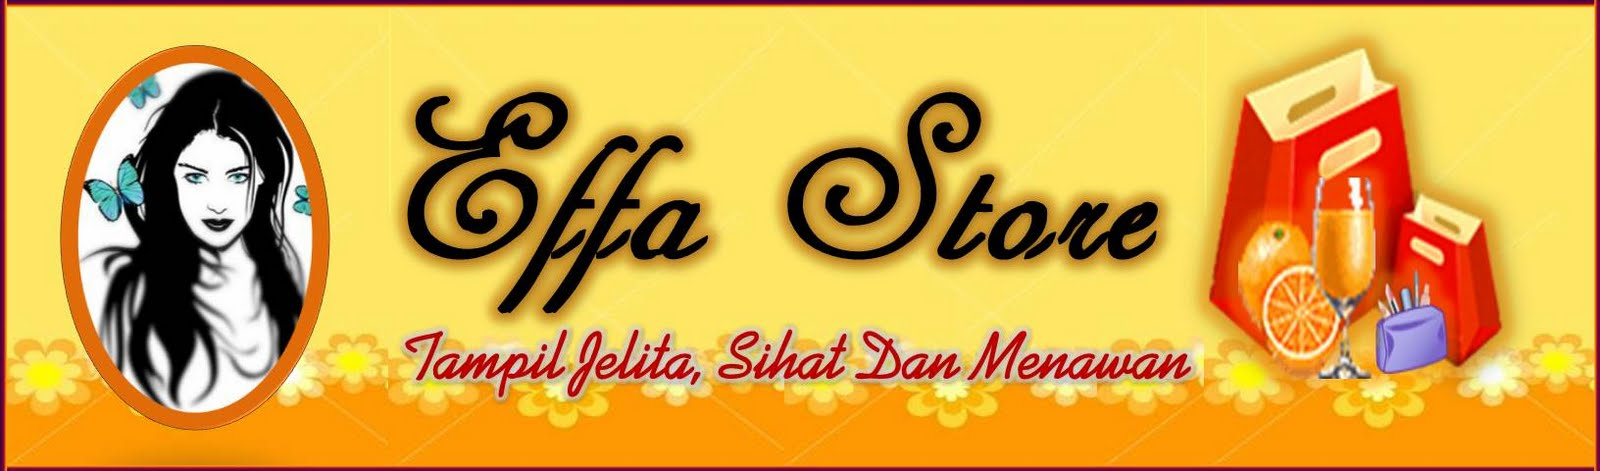 WELCOME TO EFFA STORE